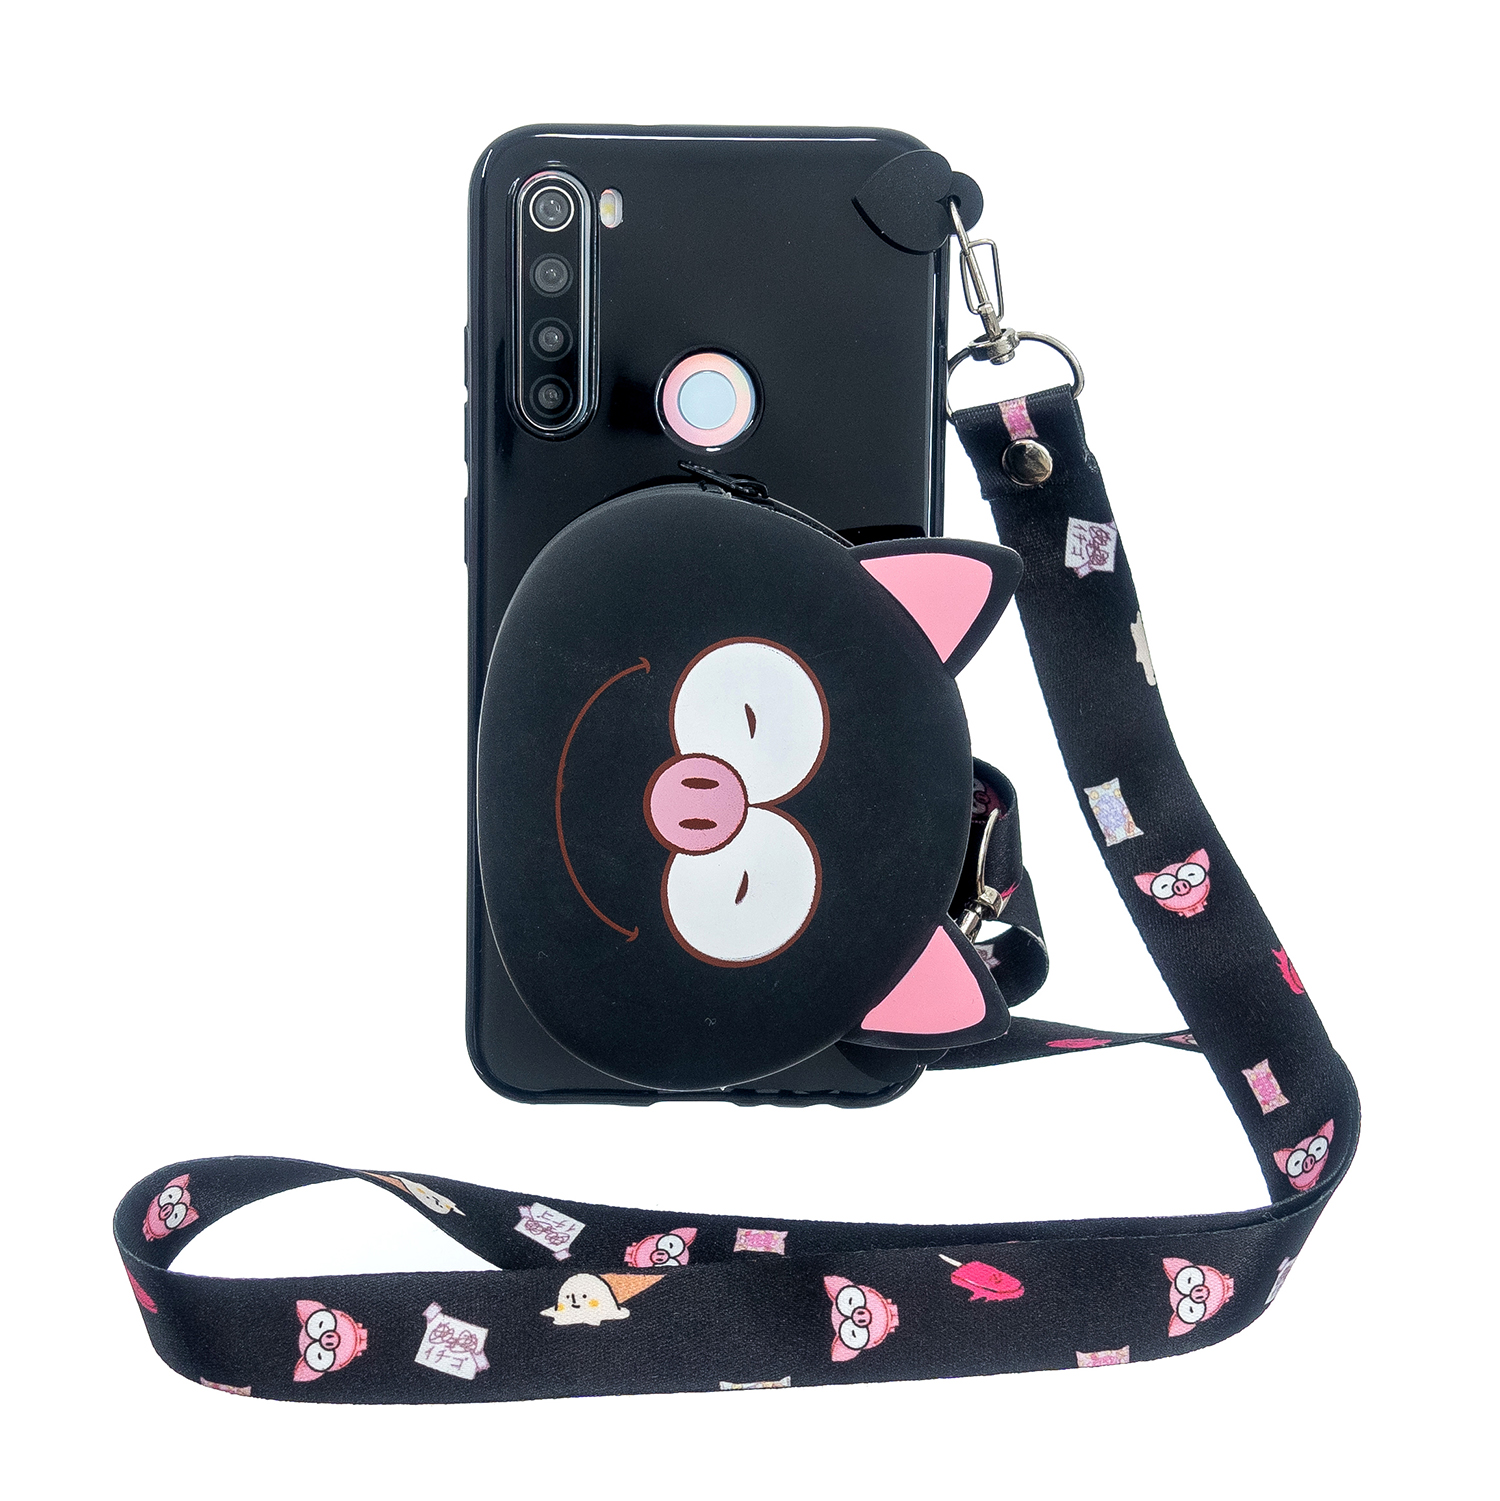 For Redmi Note 8/8T/8 Pro Cellphone Case Mobile Phone Shell Shockproof TPU Cover with Cartoon Cat Pig Panda Coin Purse Lovely Shoulder Starp  Black